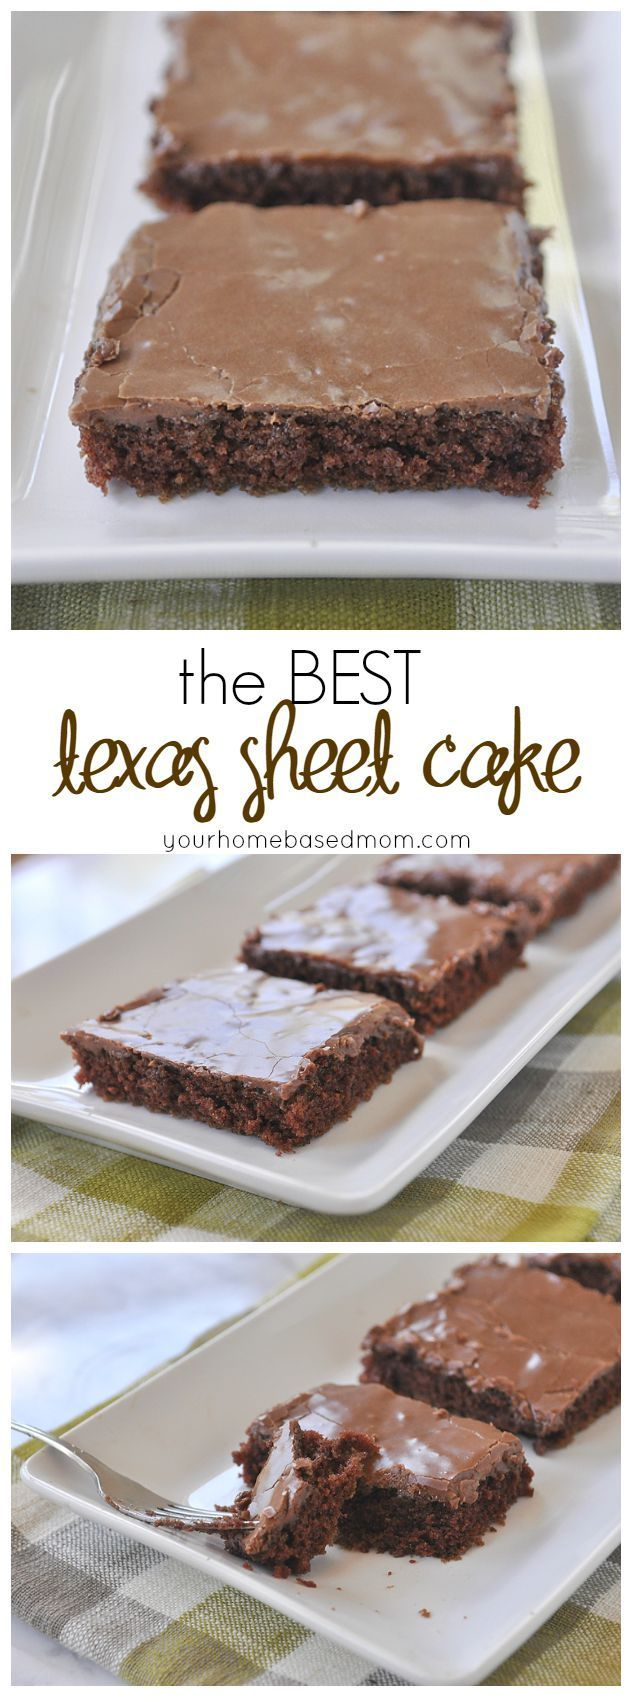 Best 25 Texas sheet cakes ideas on Pinterest Texas chocolate